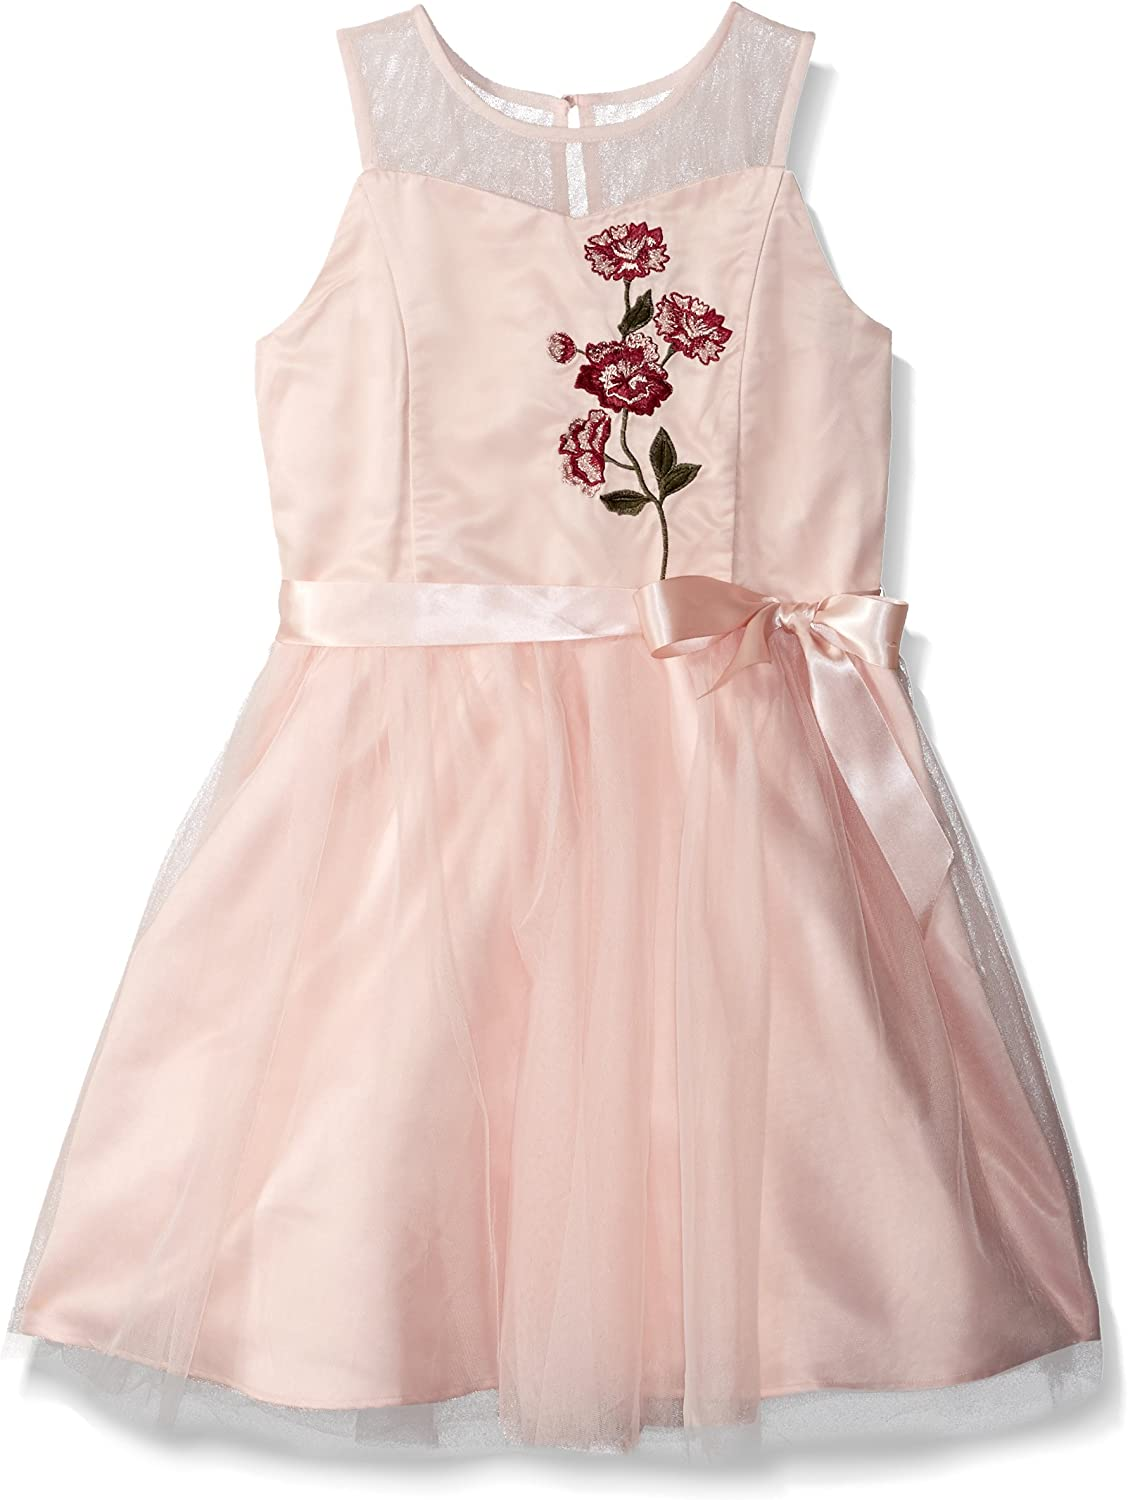 ZUNIE Girls' Big Embroidered Floral Dress with Ribbon at Waist